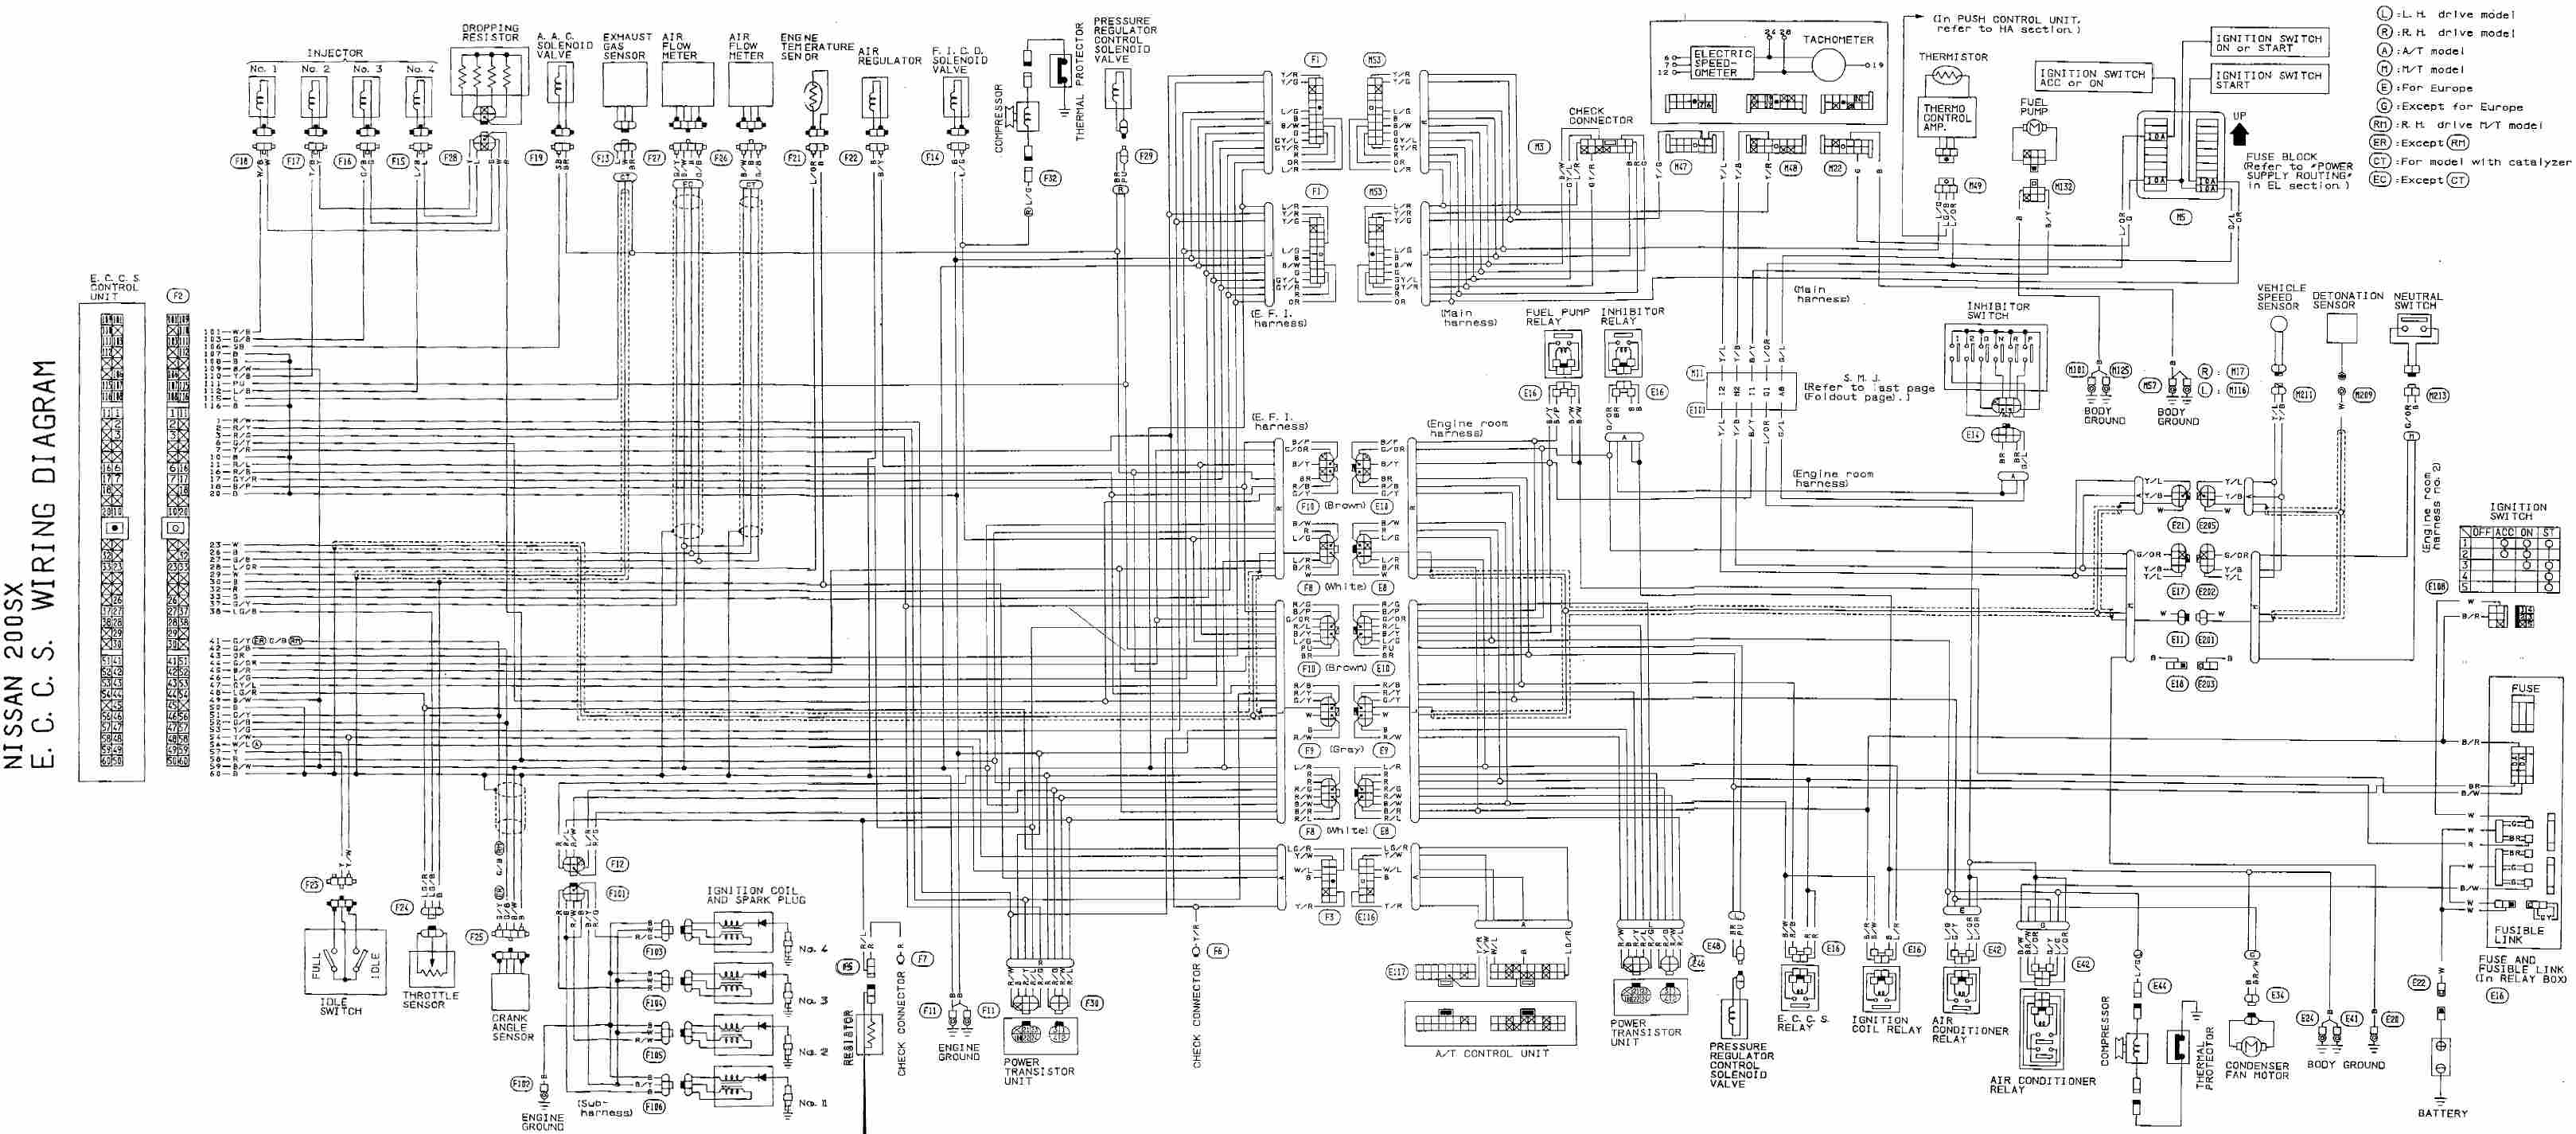 complete eccs wiring diagram of nissan 200x?t\=1508500919 300zx wiring diagram 300zx engine wiring diagram \u2022 wiring diagrams 2011 nissan armada wiring diagram at webbmarketing.co